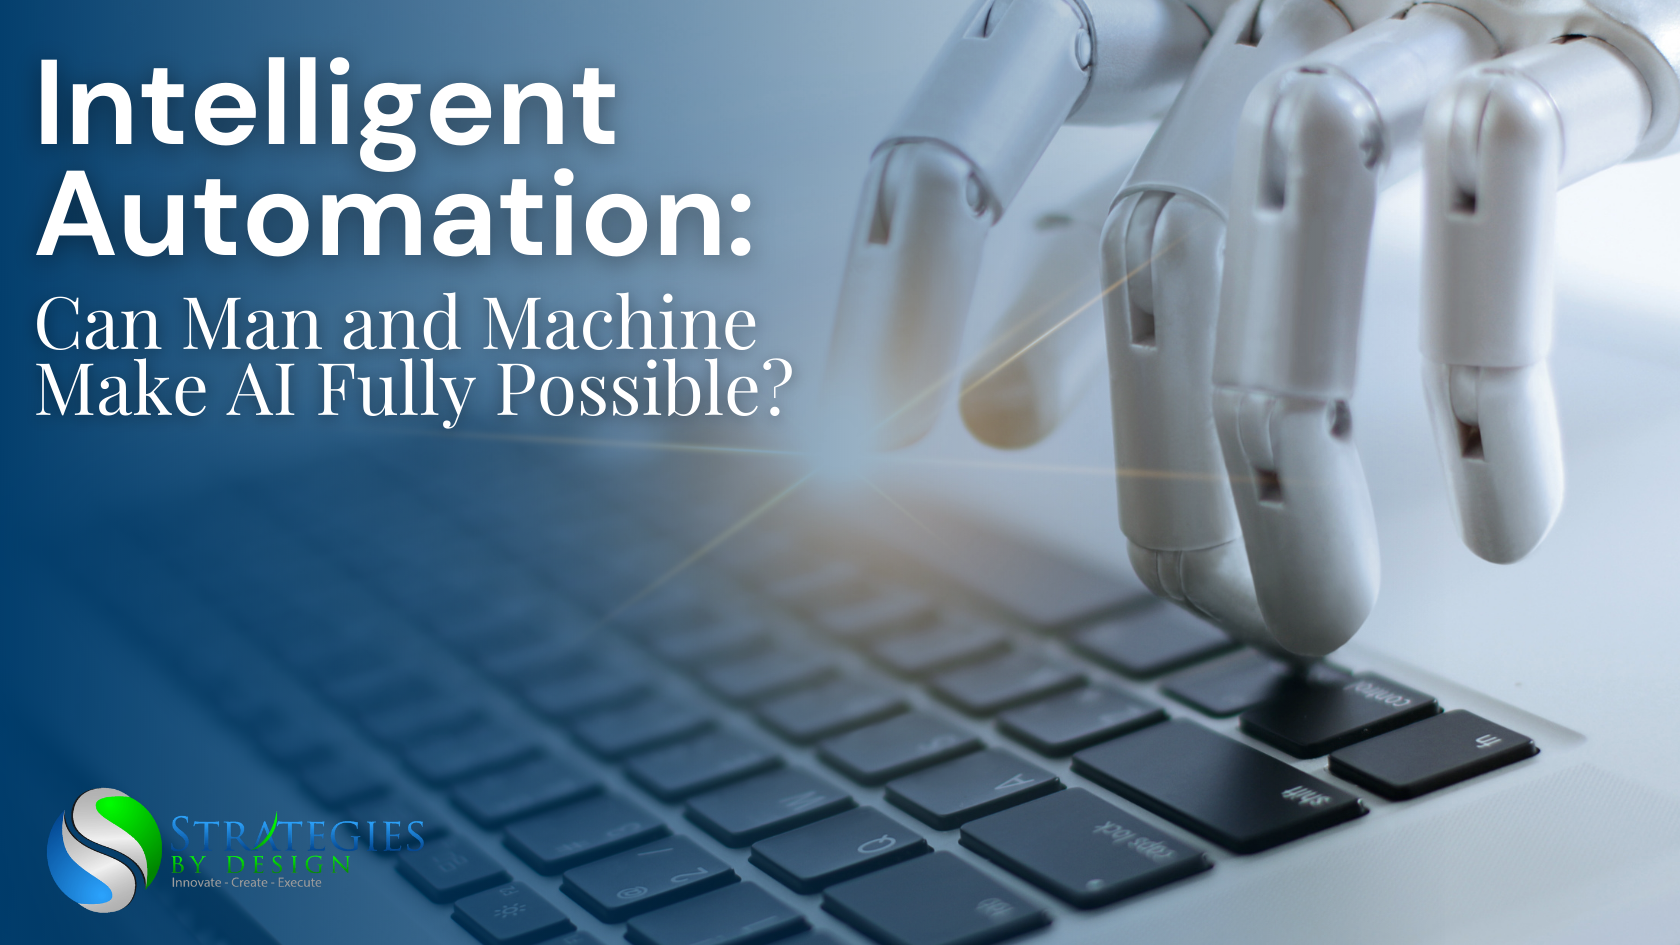 Intelligent Automation - Strategies by Design - Featured Image